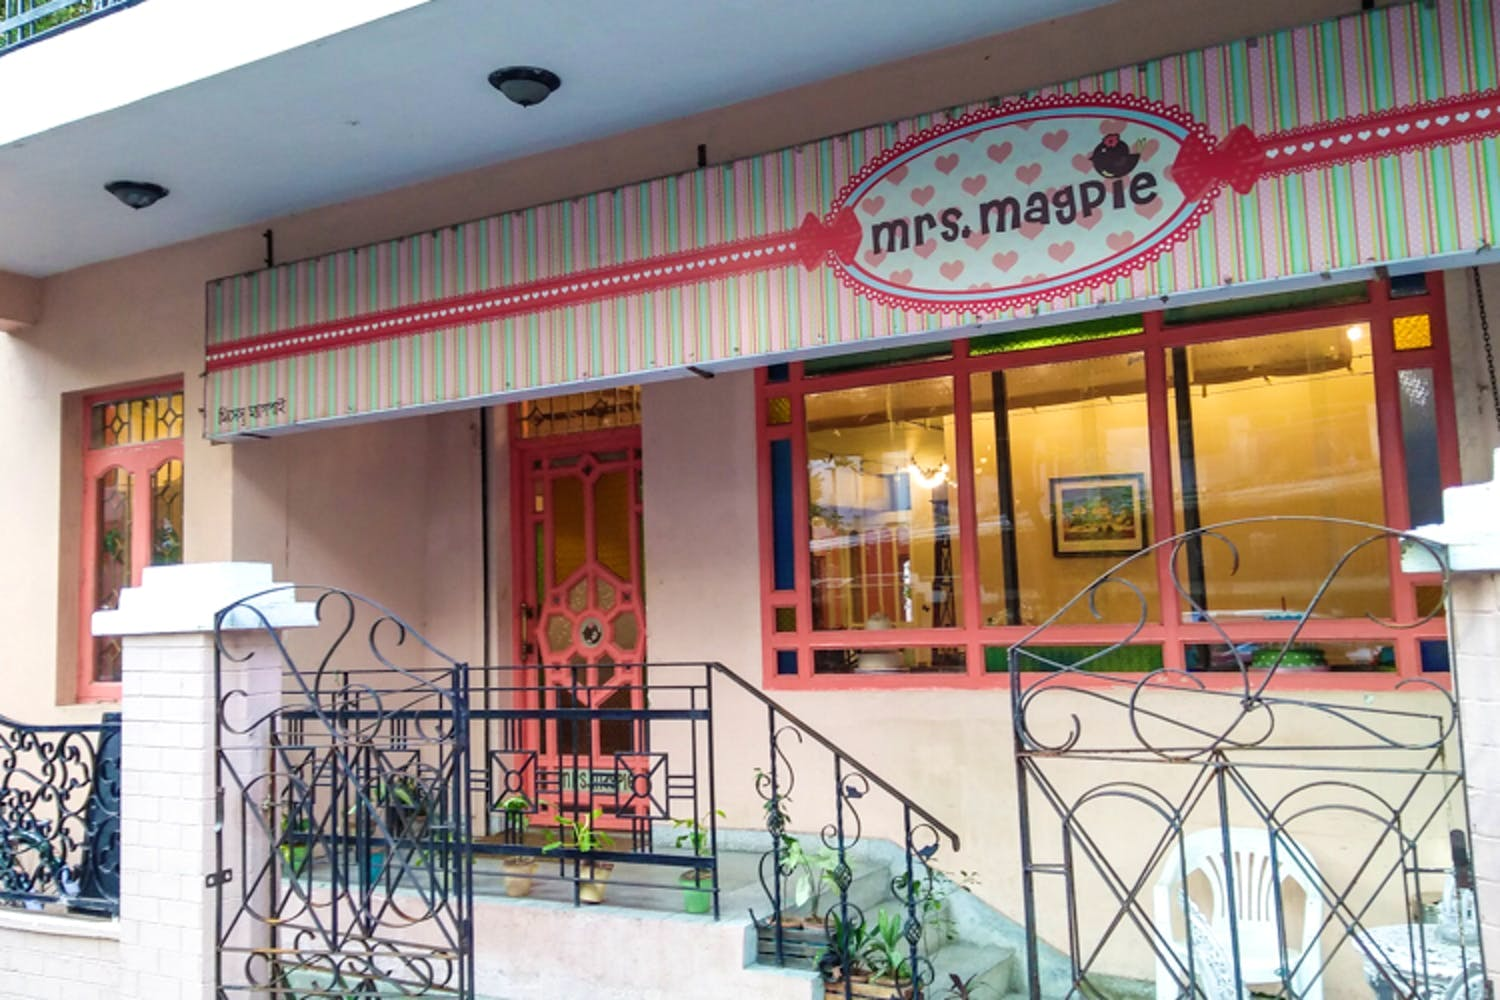 Mrs. Magpie - Restaurants In Kolkata That Every Tourists Must Visit